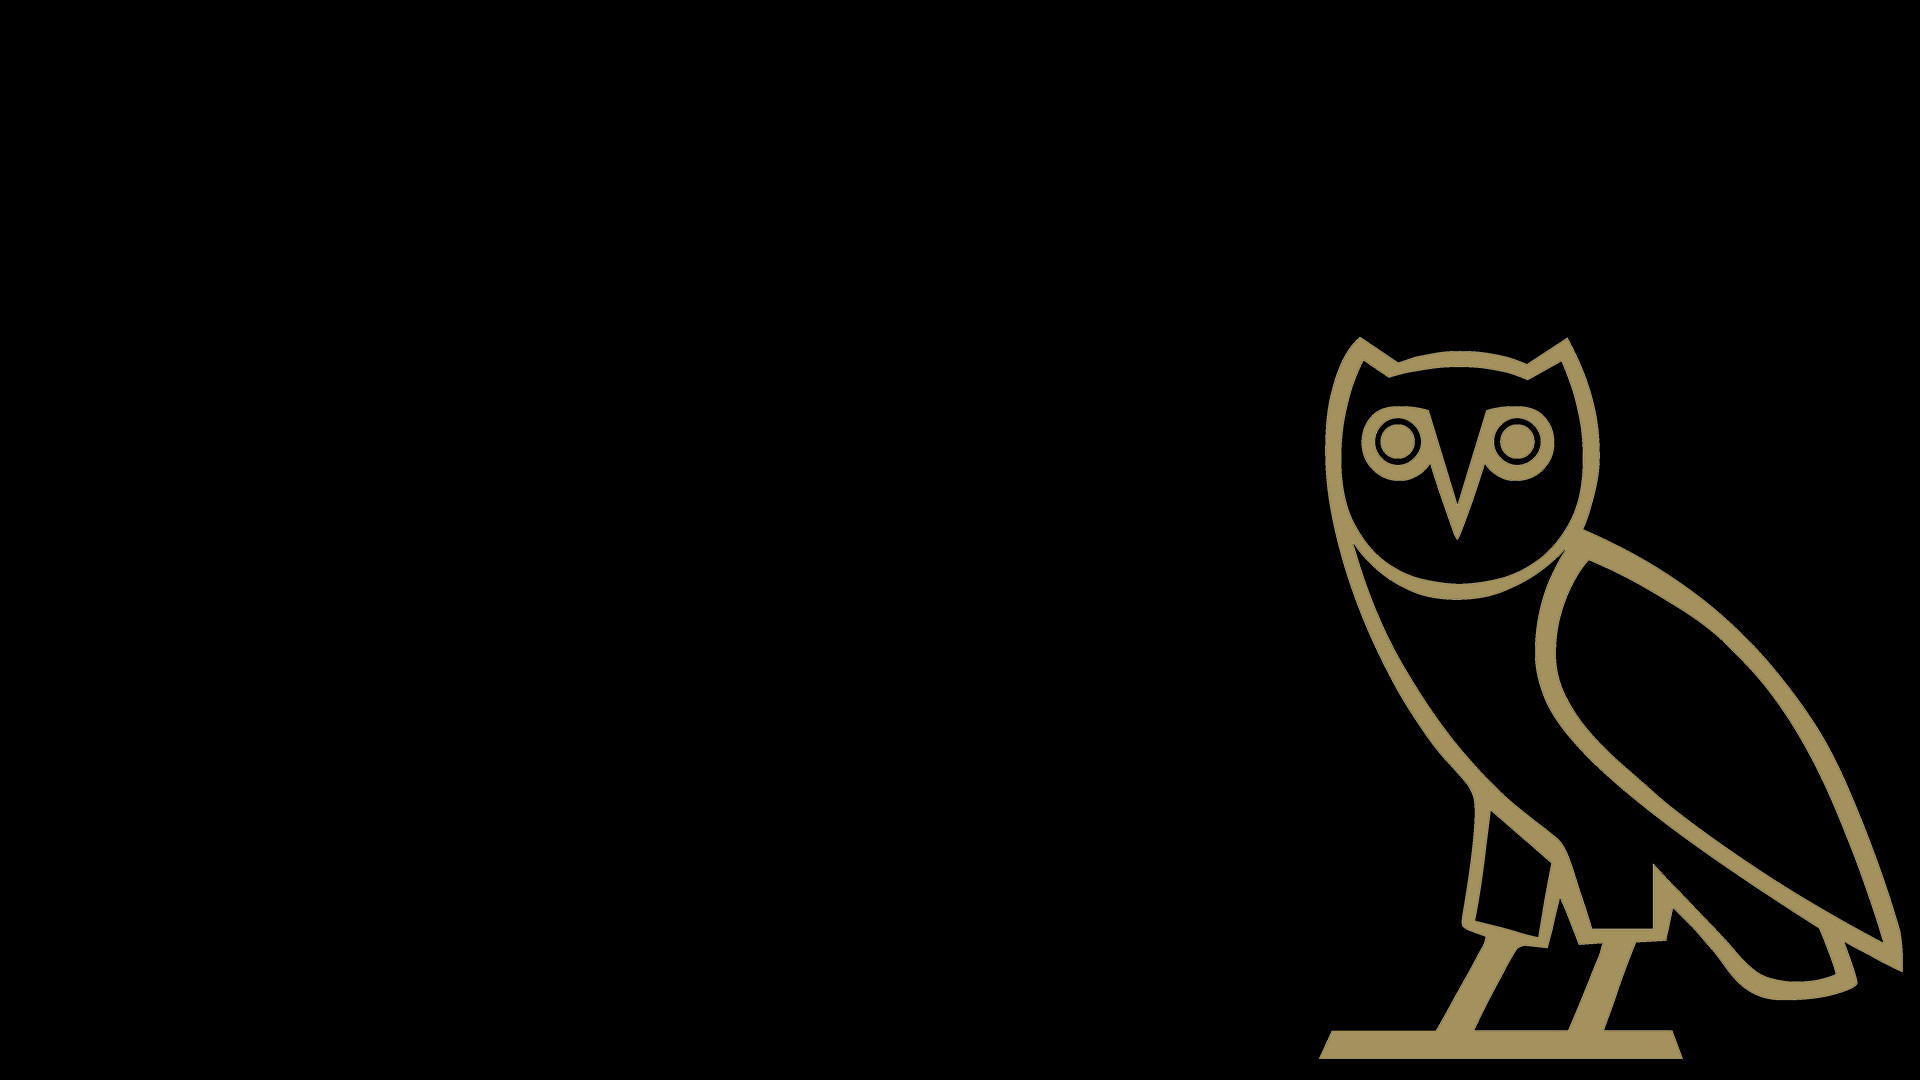 Michael Jackson Hd Wallpapers For Iphone 6 Ovo Owl Wallpaper 78 Images